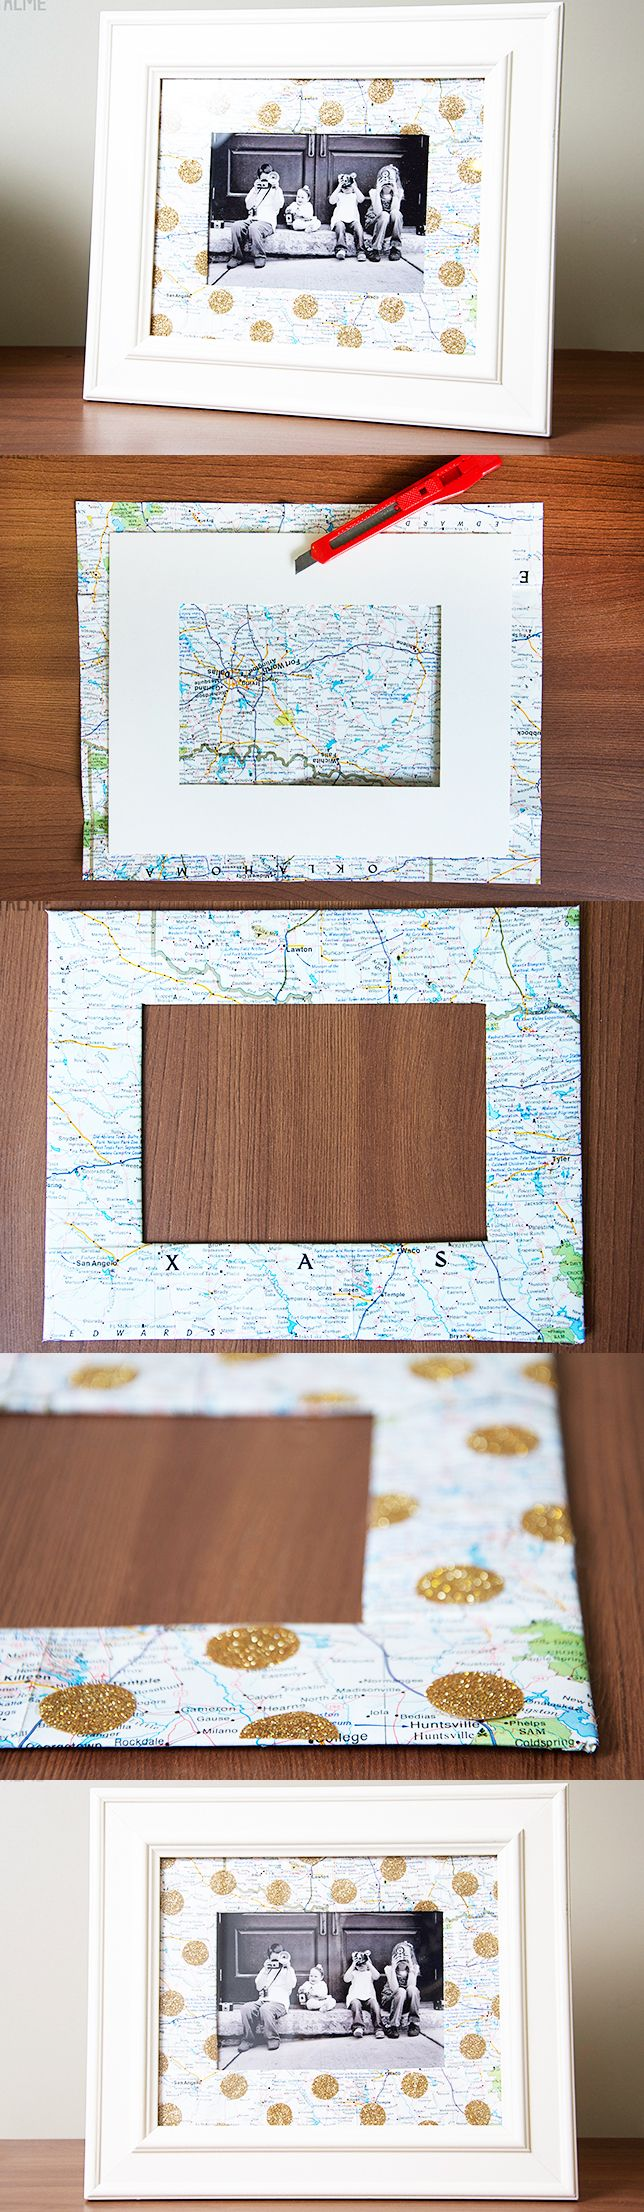 Make a photo mat out of a favorite map! Embellish with gold polka-dots, or memorabilia from your trip!